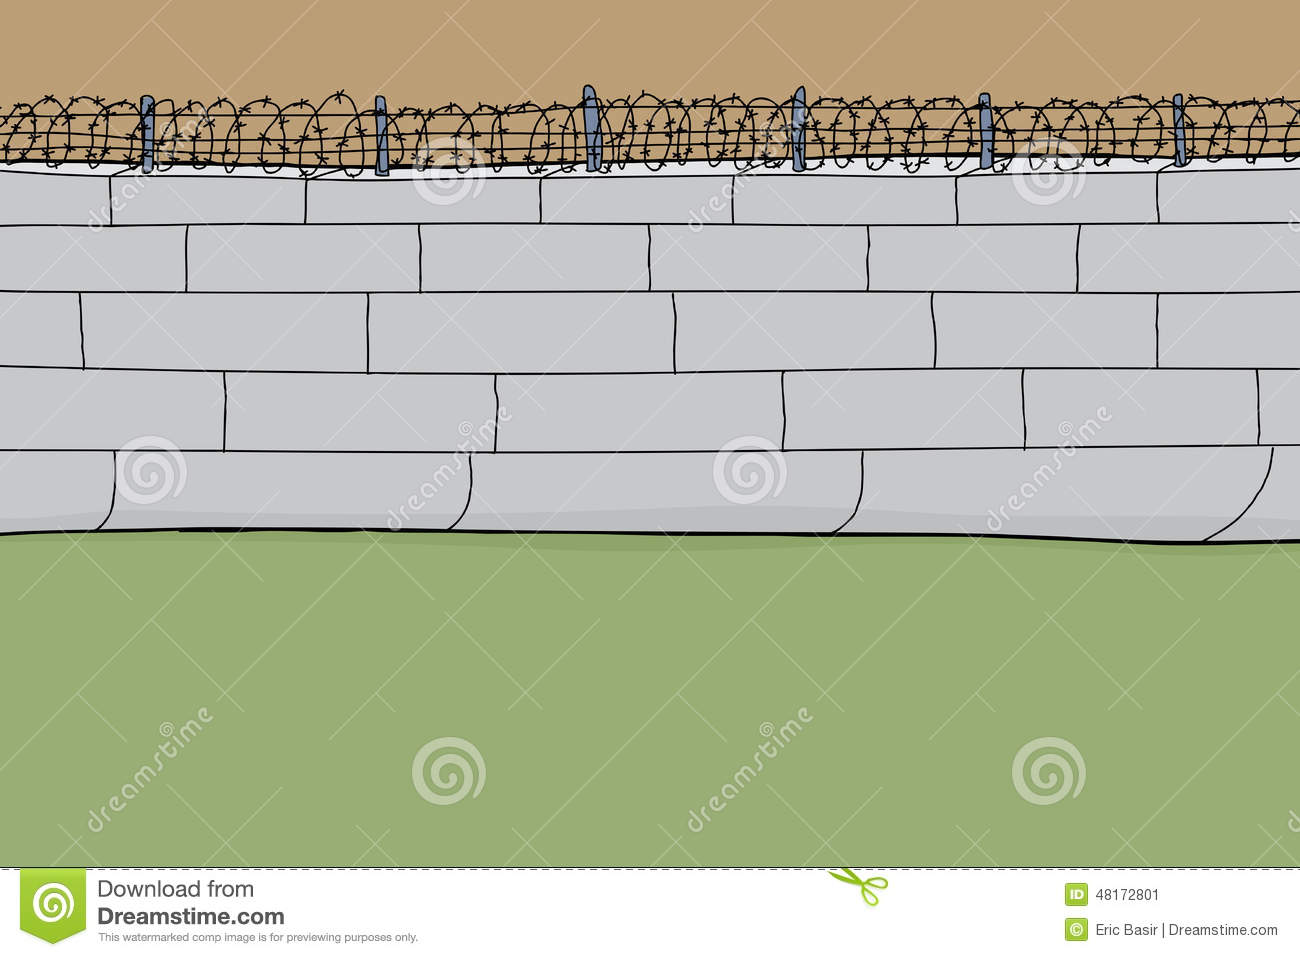 Cartoon Barbed Wire Wall Stock Vector